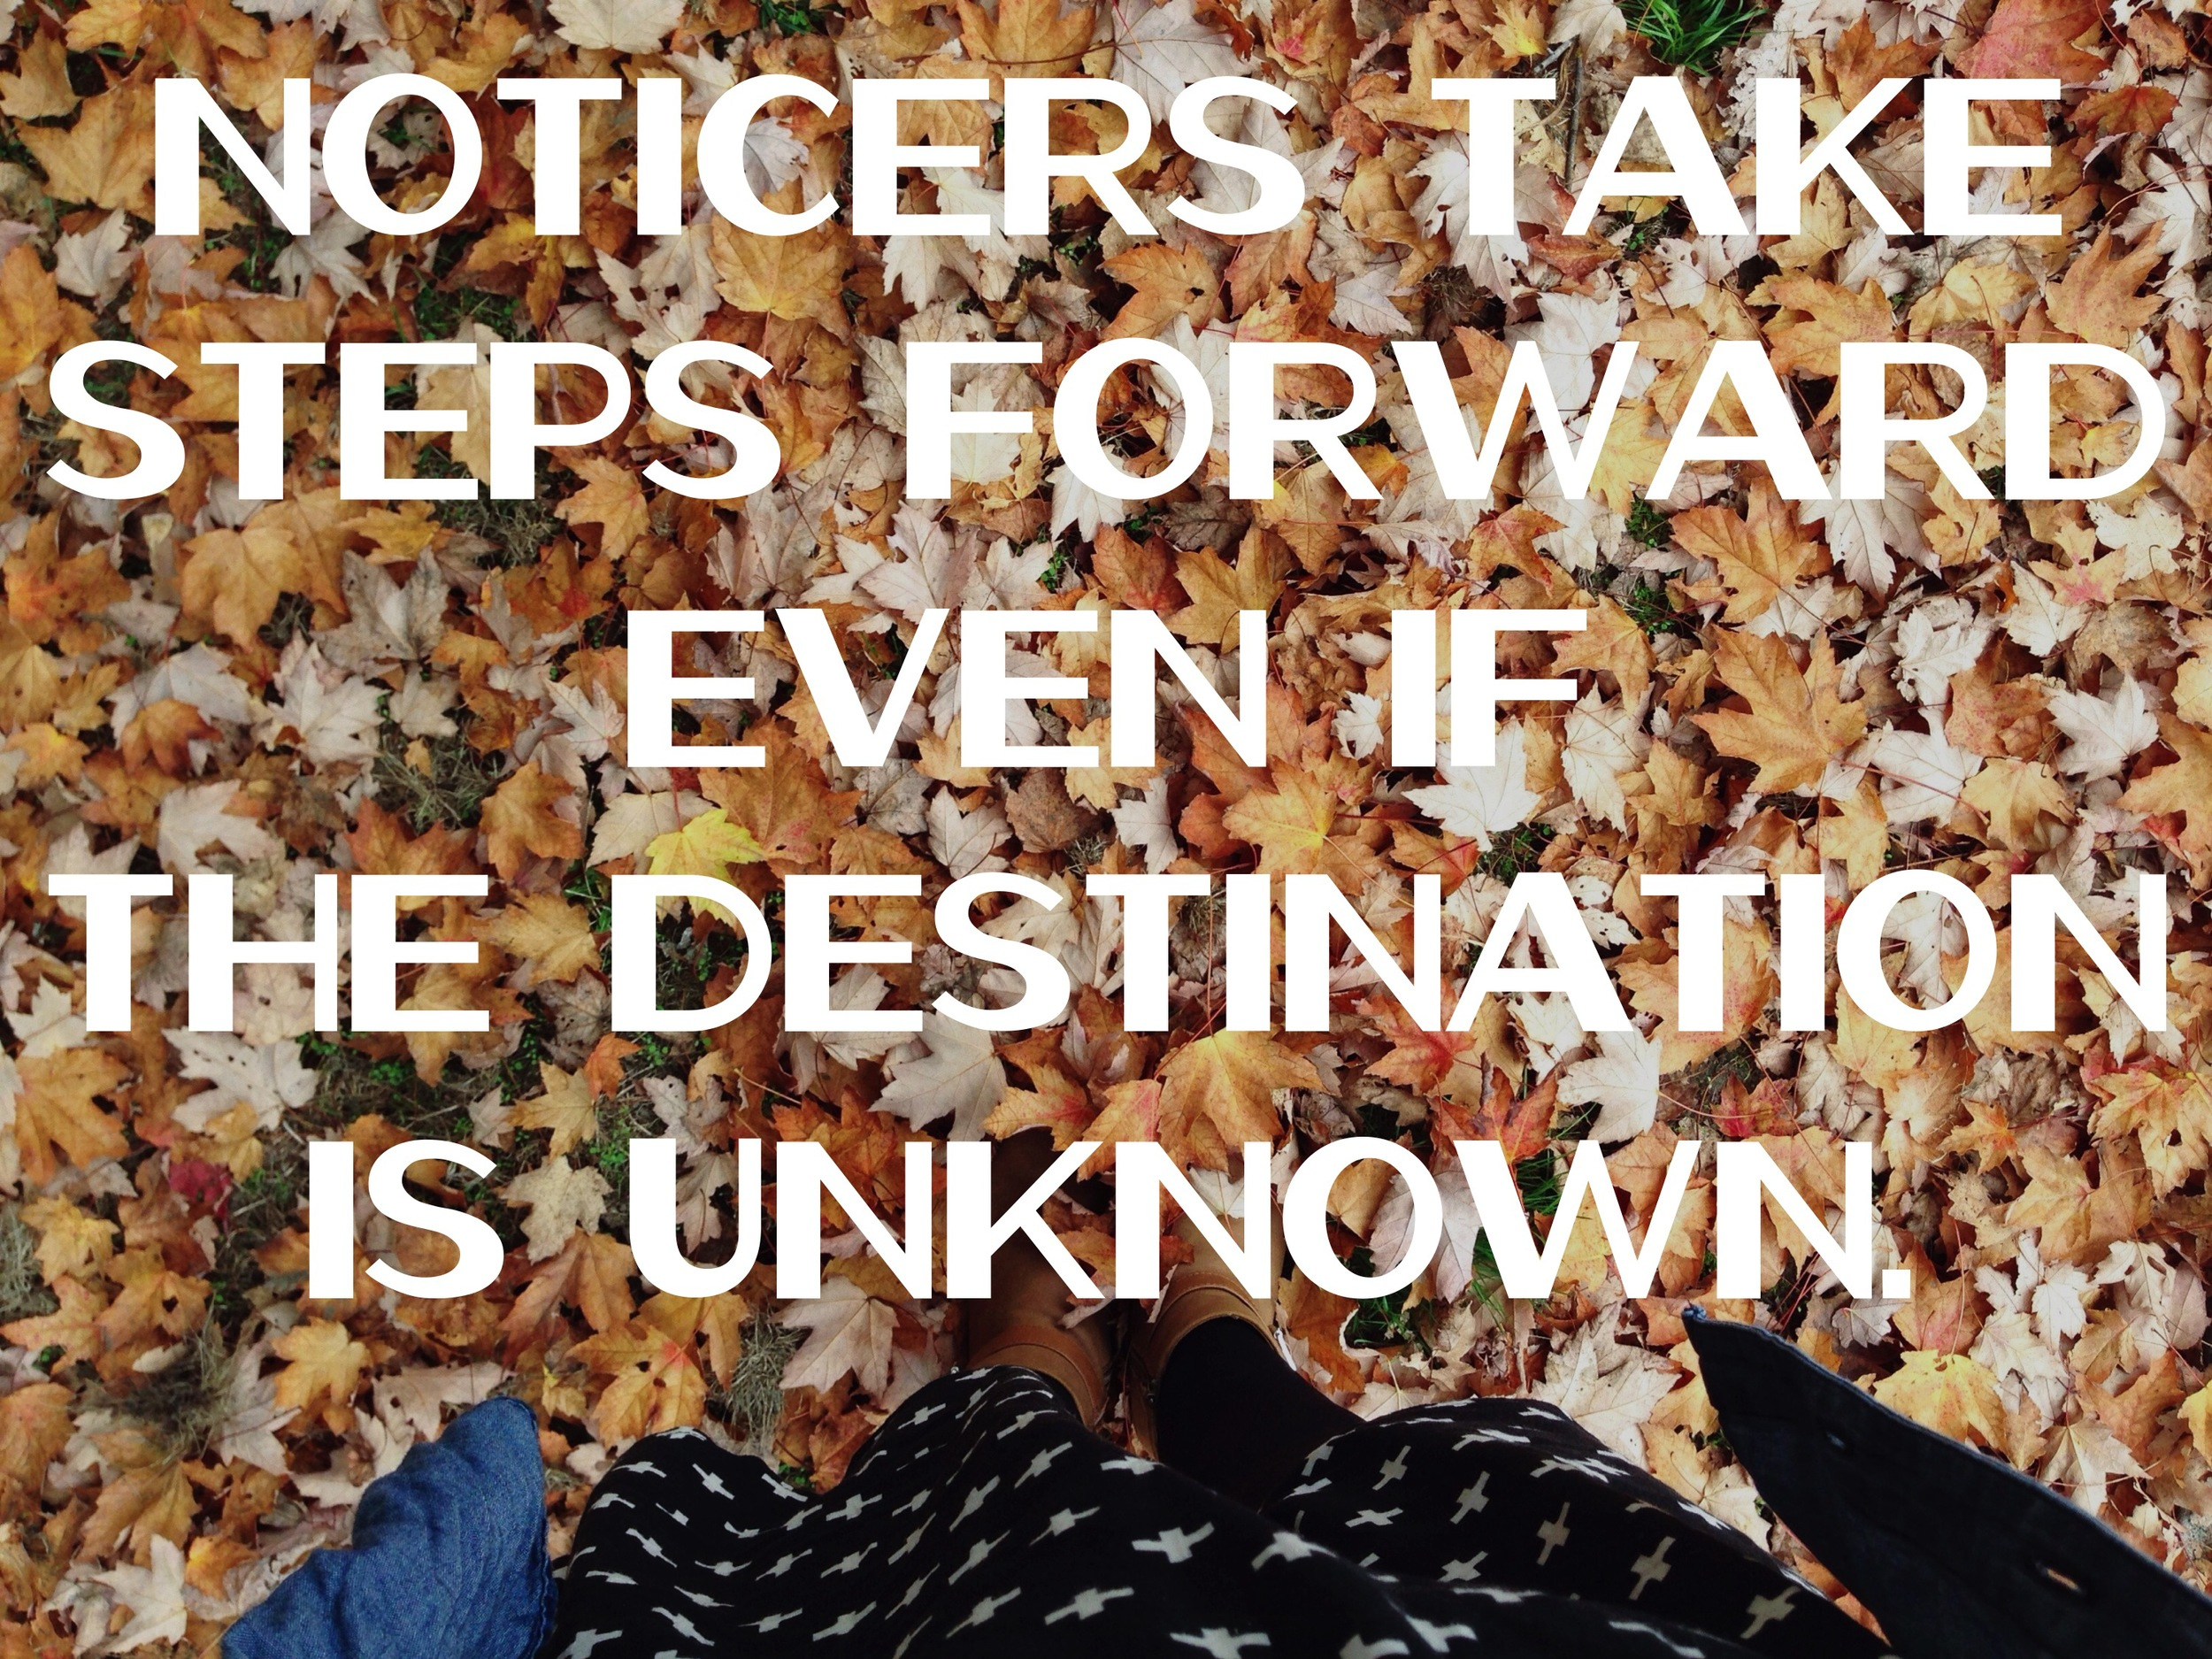 Noticers go into the unknown boldly nadinewouldsay